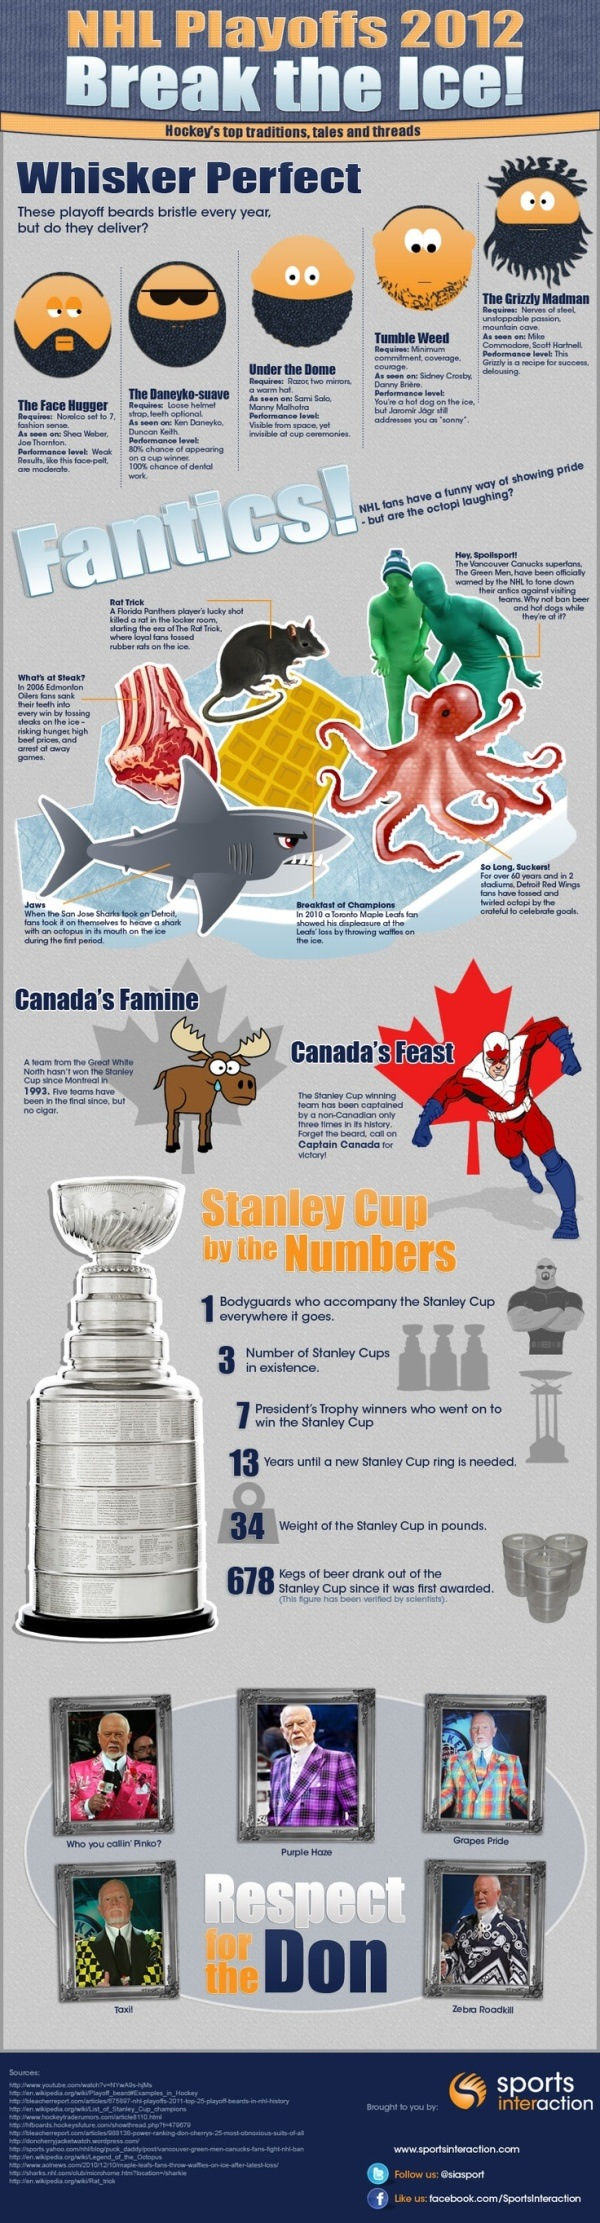 NHL Playoffs 2012